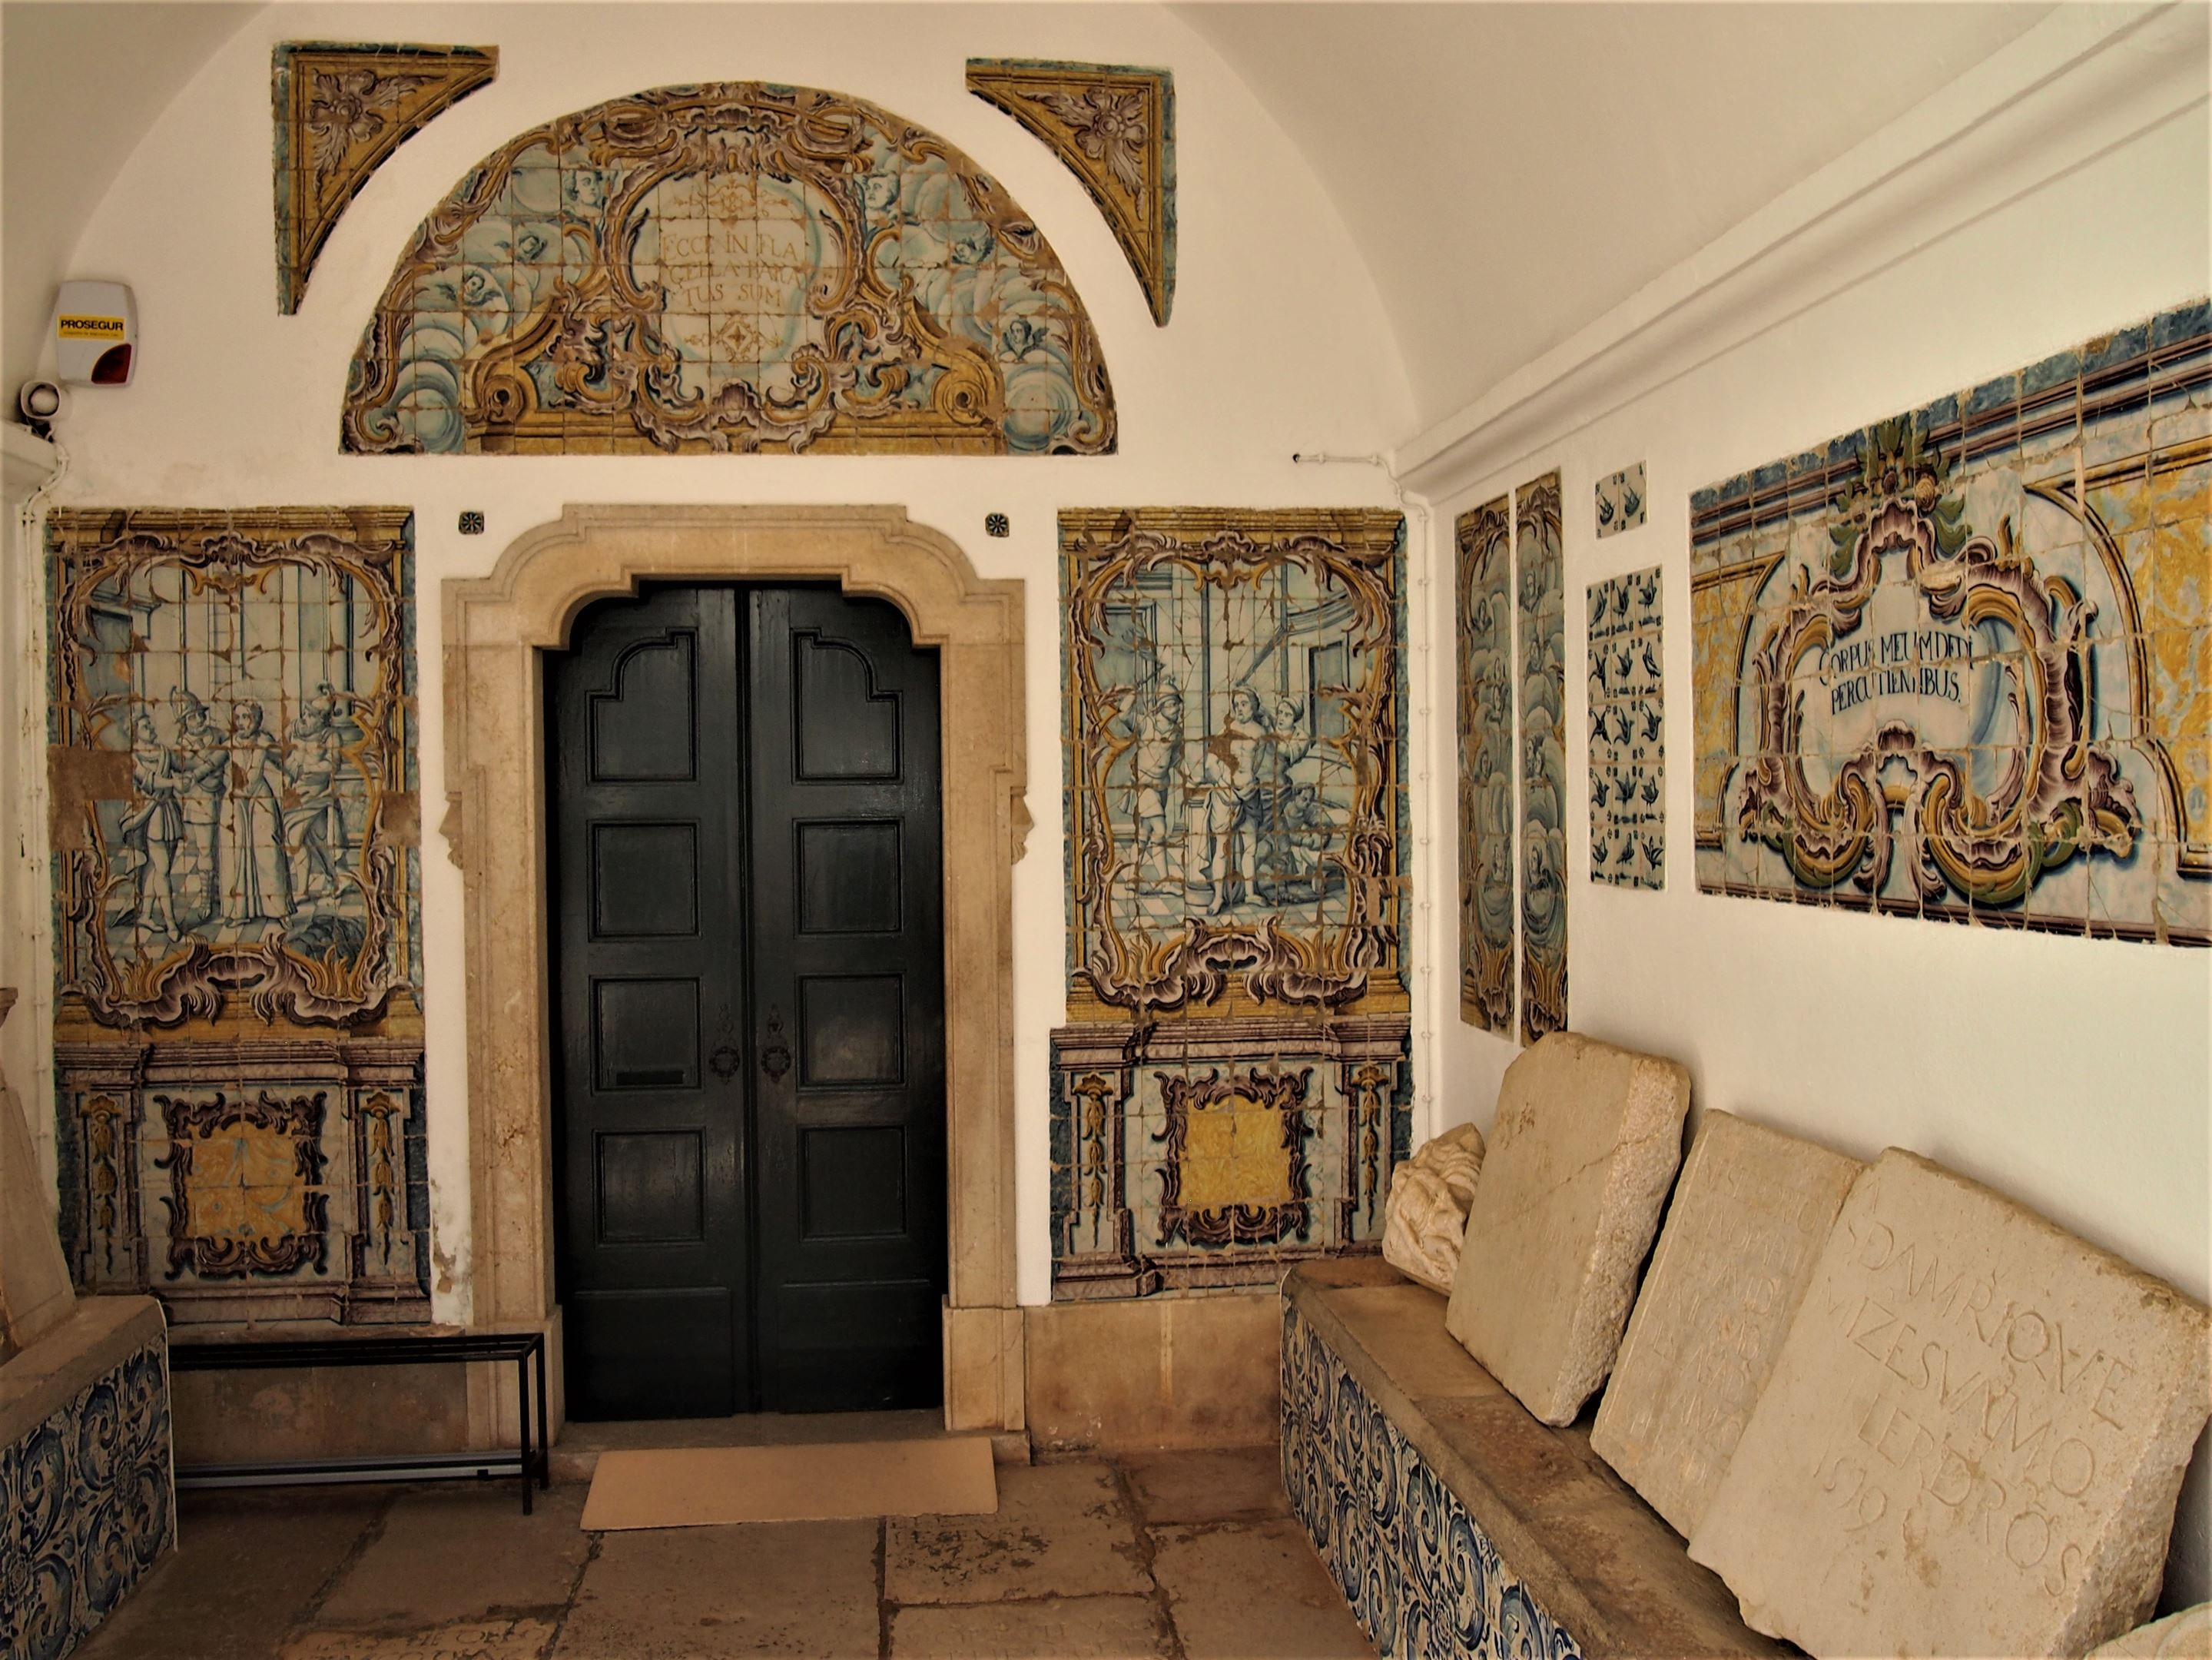 The highly decorative entrance to the Museu Municipal Dr. José Formosinho (or the Municipal Museum) in Lagos